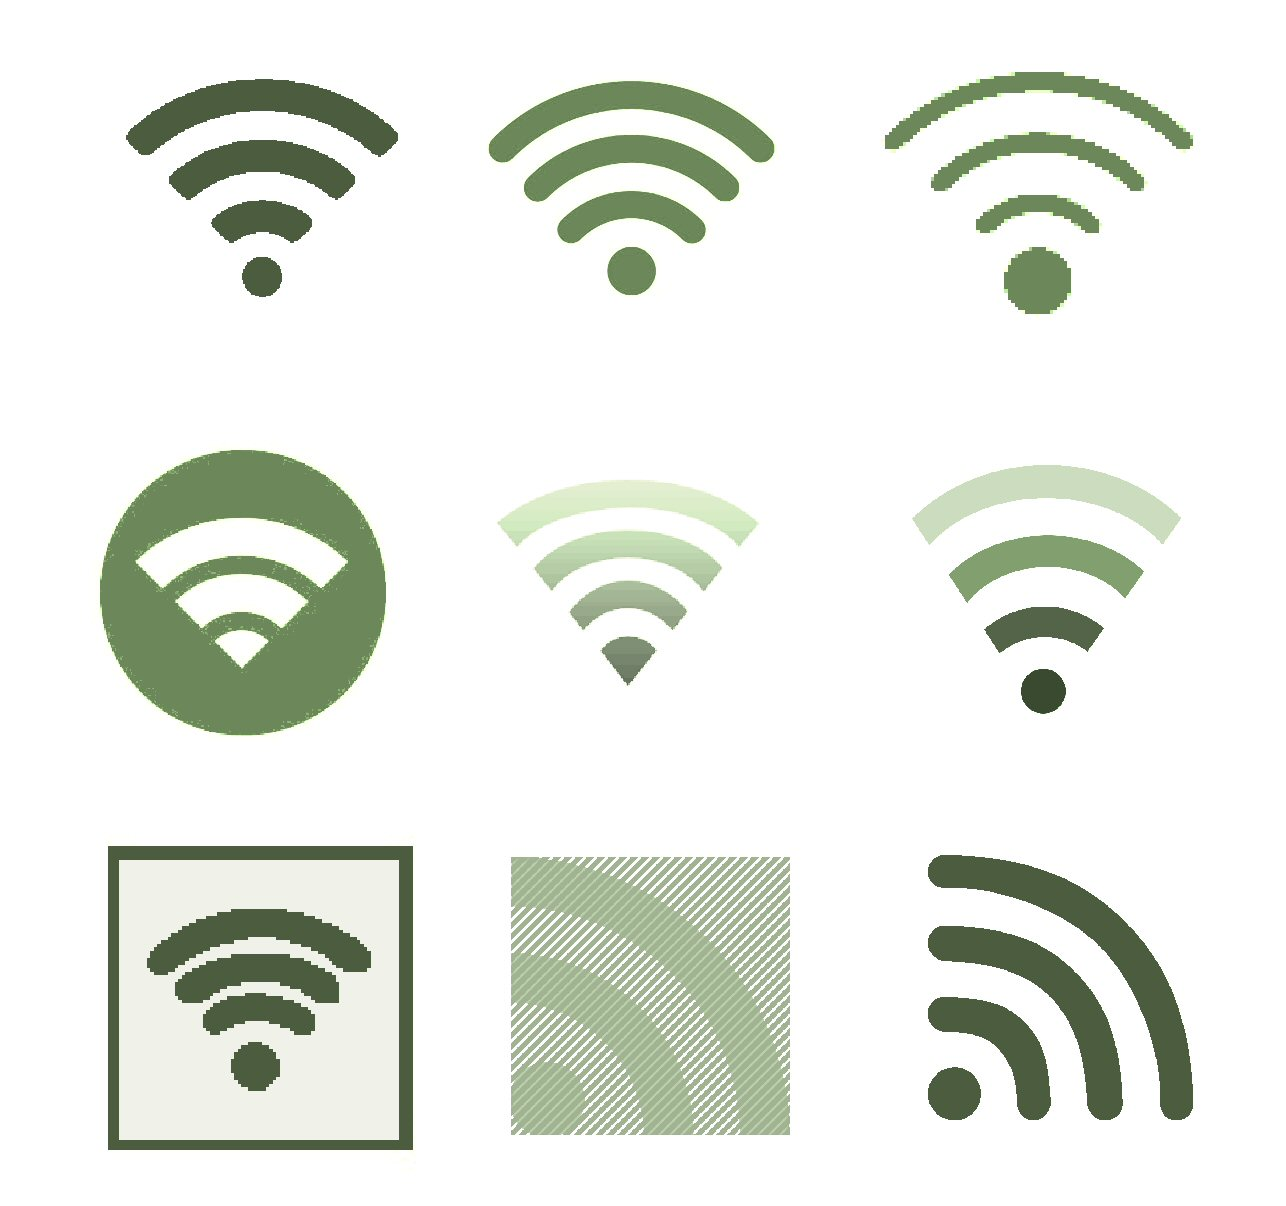 Wi-fi icons without antennas.